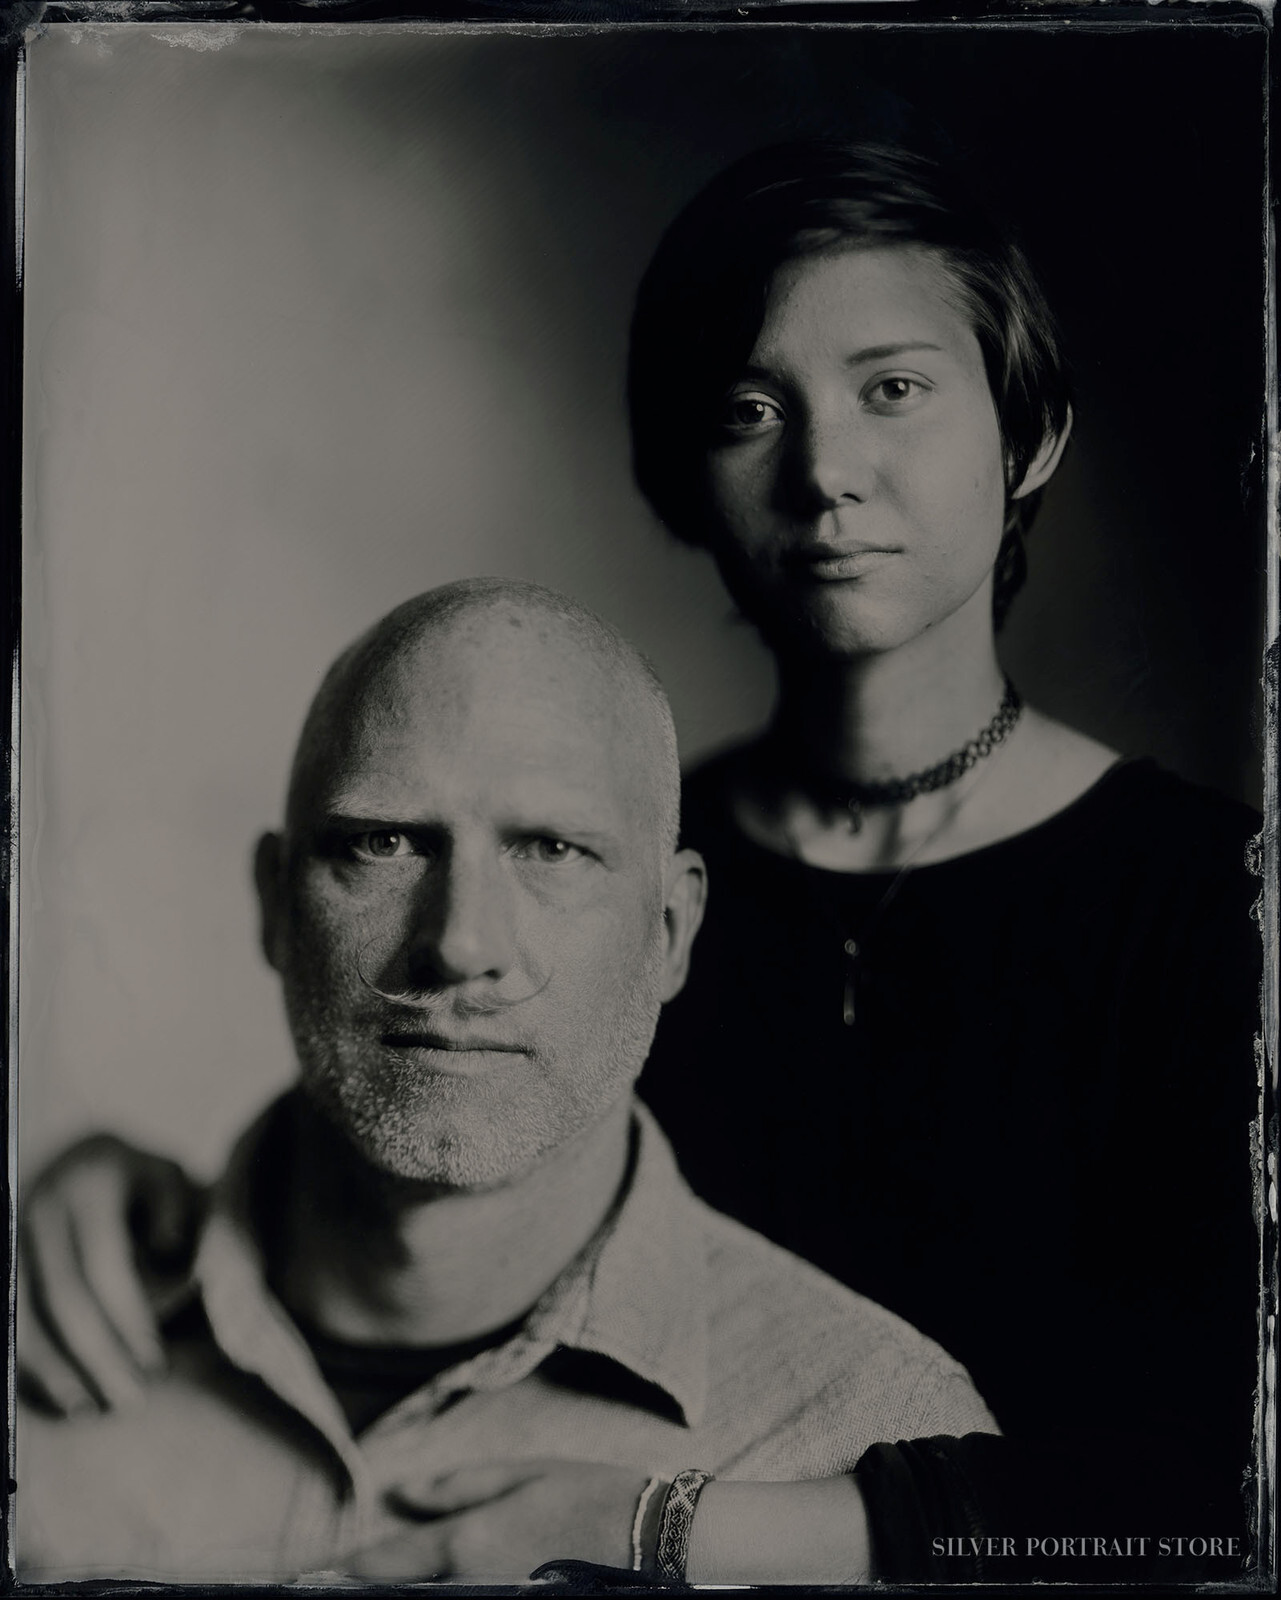 Paul & Antonia-Silver Portrait Store-scan from Wet plate collodion-Black glass Ambrotype 20 x 25 cm.